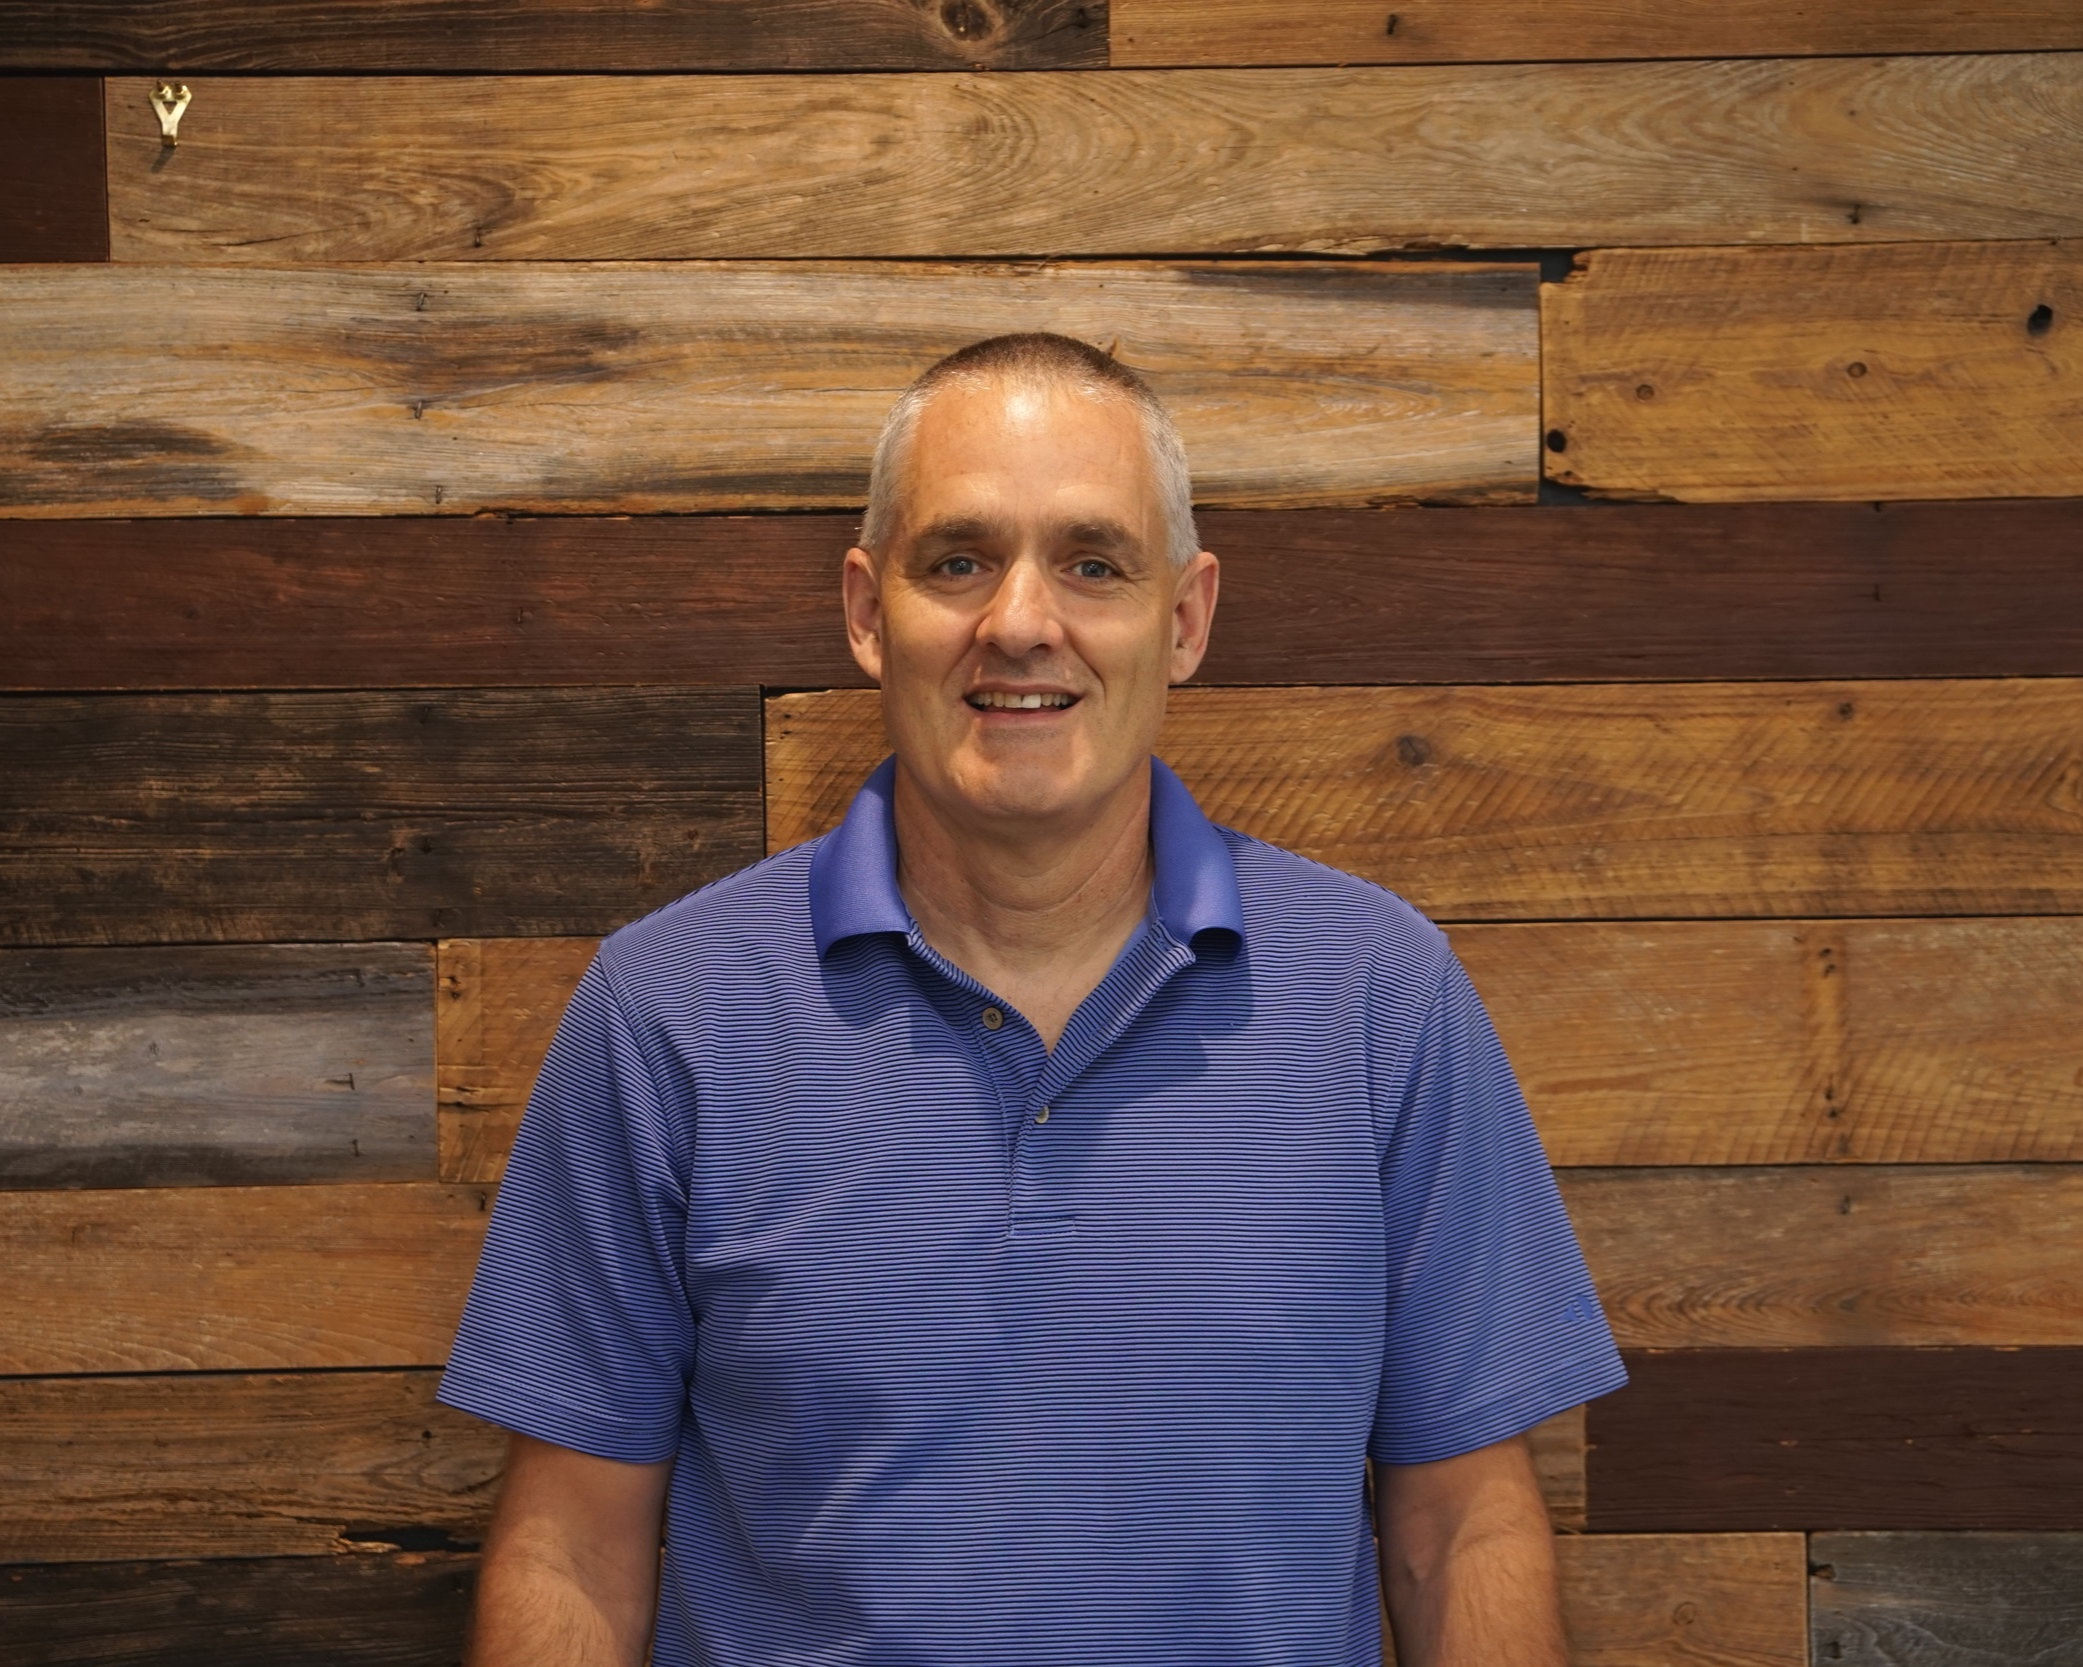 """Pastor Cameron McGough - ChildrenCameron has attended CCS for nearly 18 years and has been on staff since 2006. He is married to his high school sweetheart (Carol). They have 3 grown children and 2 grandchildren, with more on the way (probably)!""""I enjoy reading, cycling, walking, and spending time with family."""""""